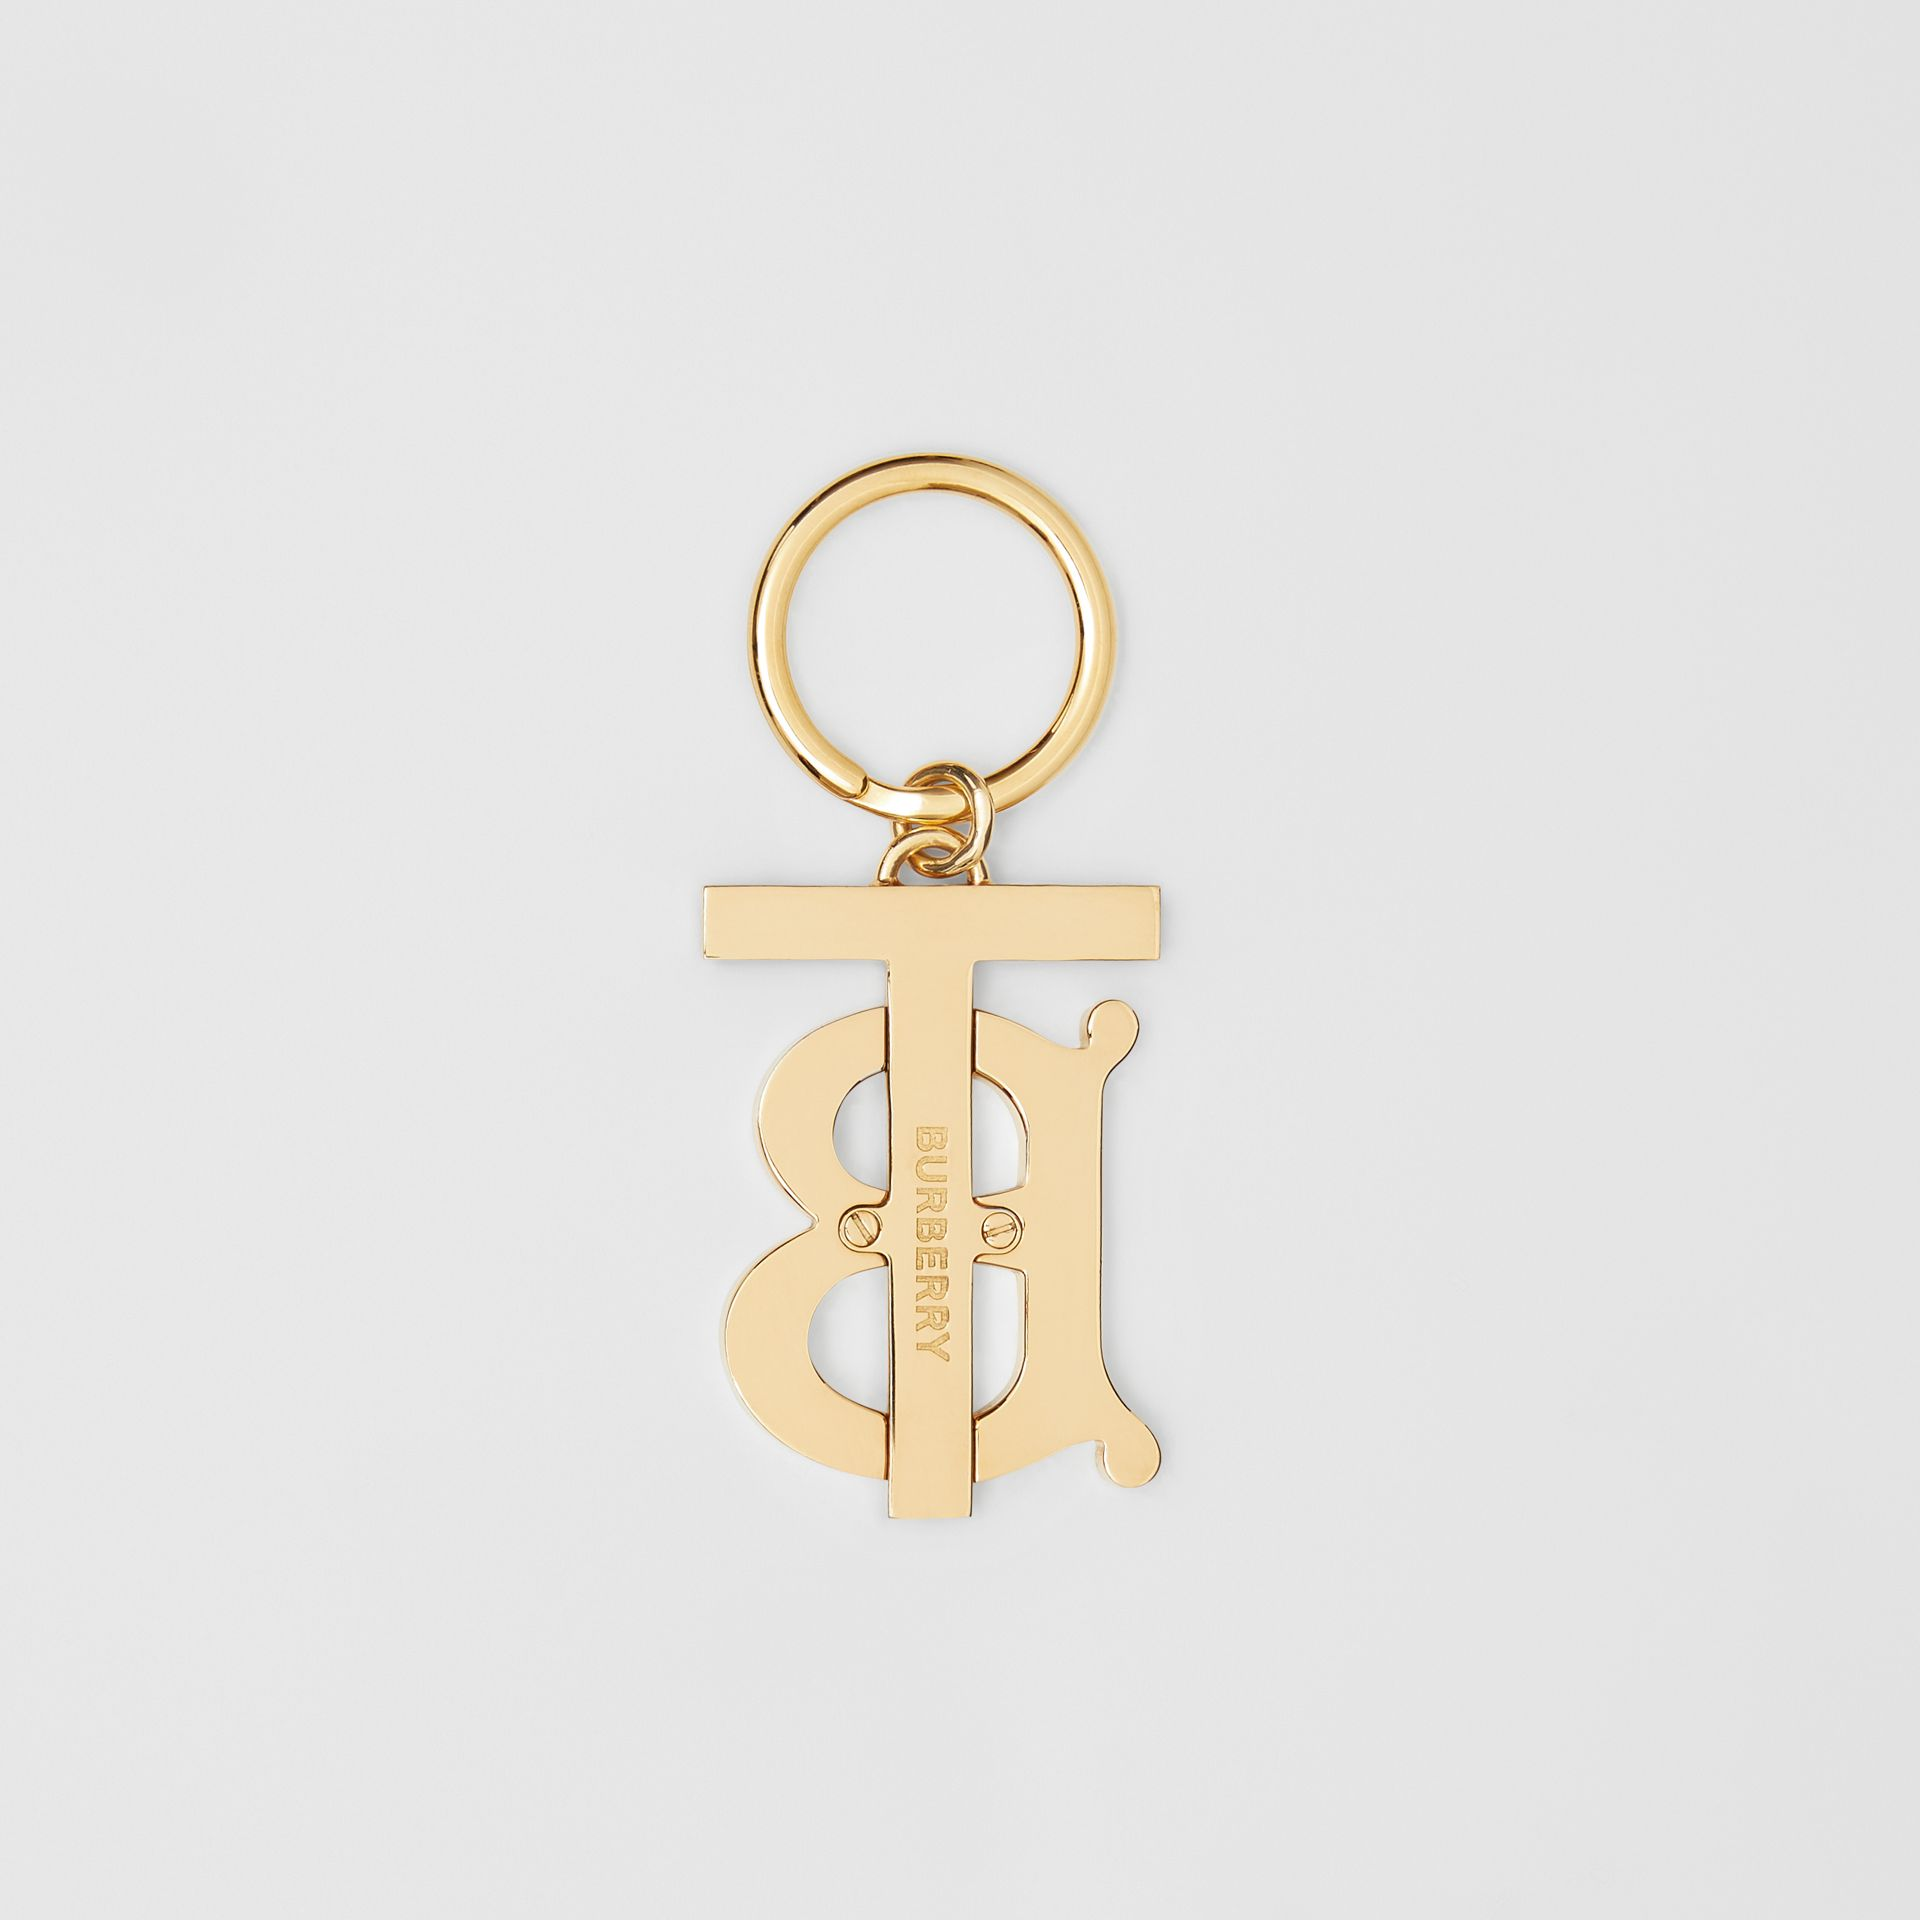 Monogram Motif Gold-plated Key Charm in Black - Women | Burberry Hong Kong S.A.R - gallery image 2